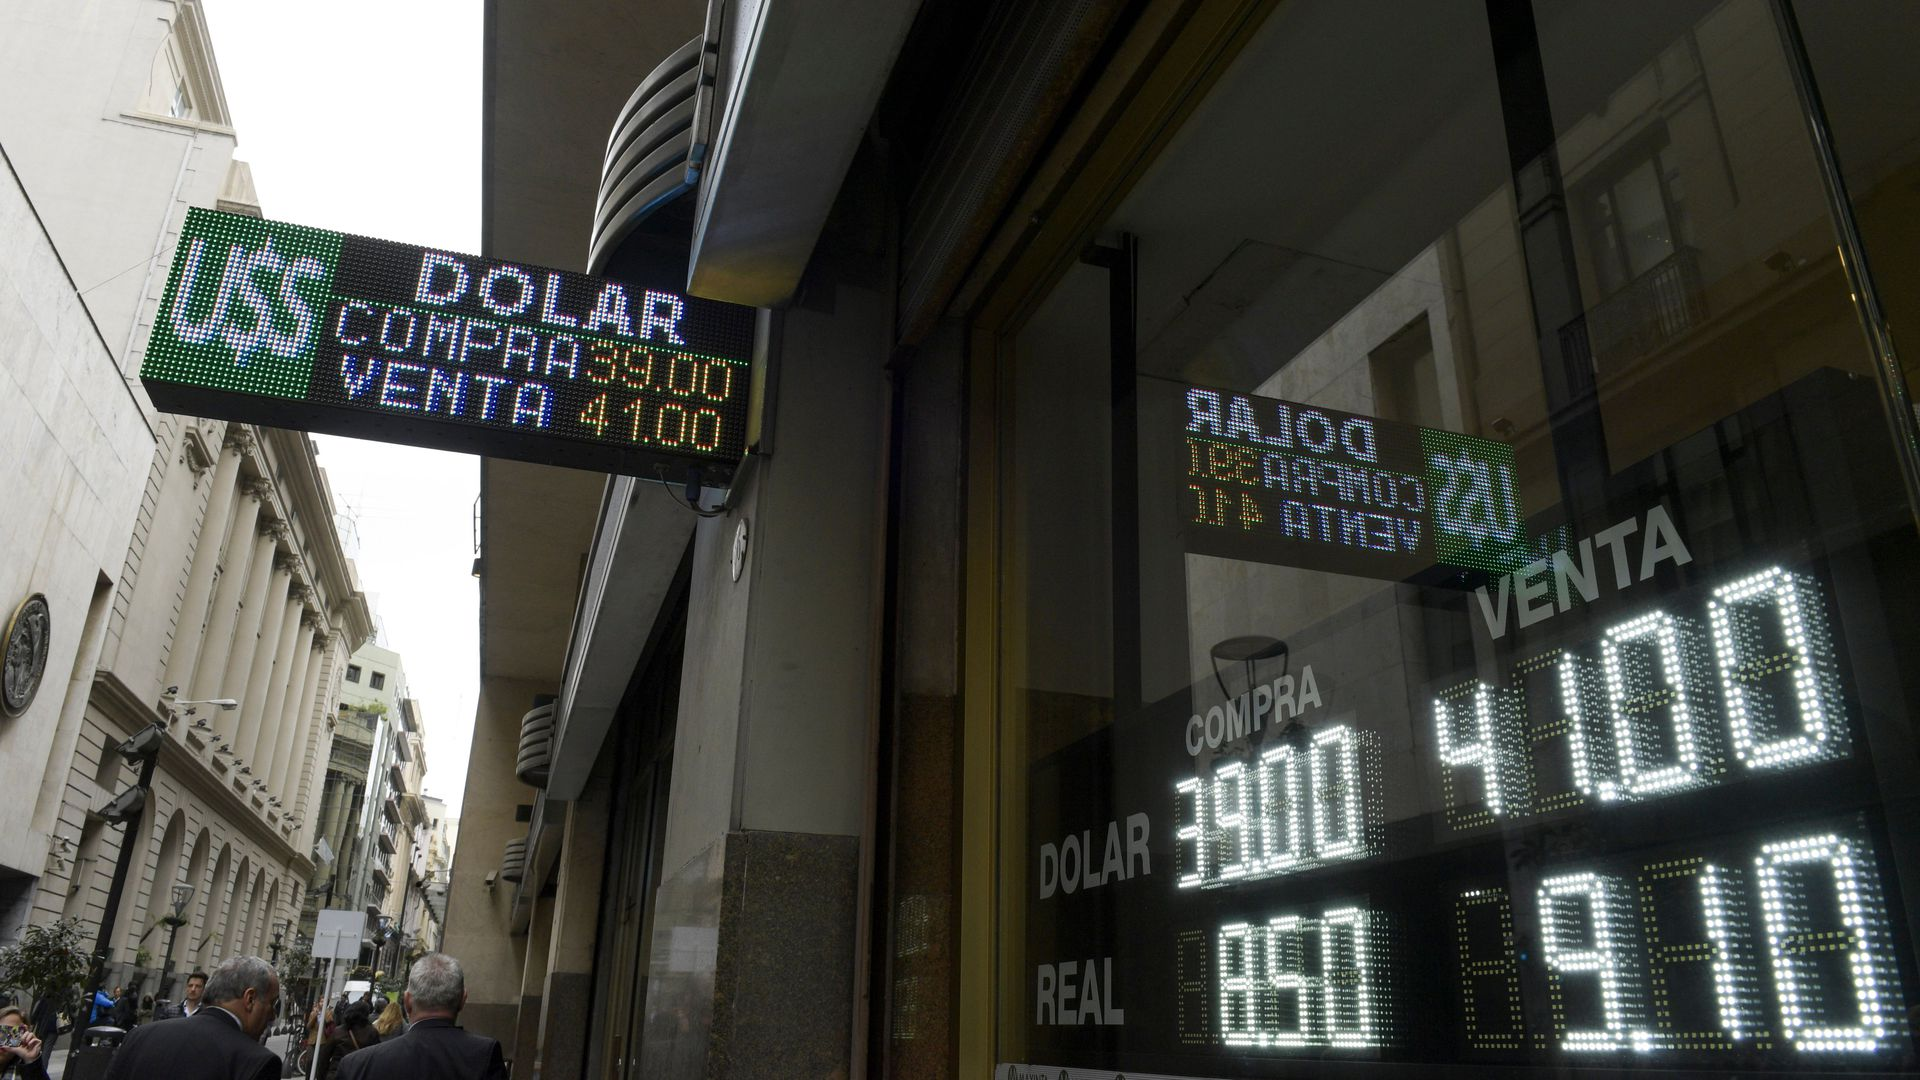 Currency exchange in Argentina